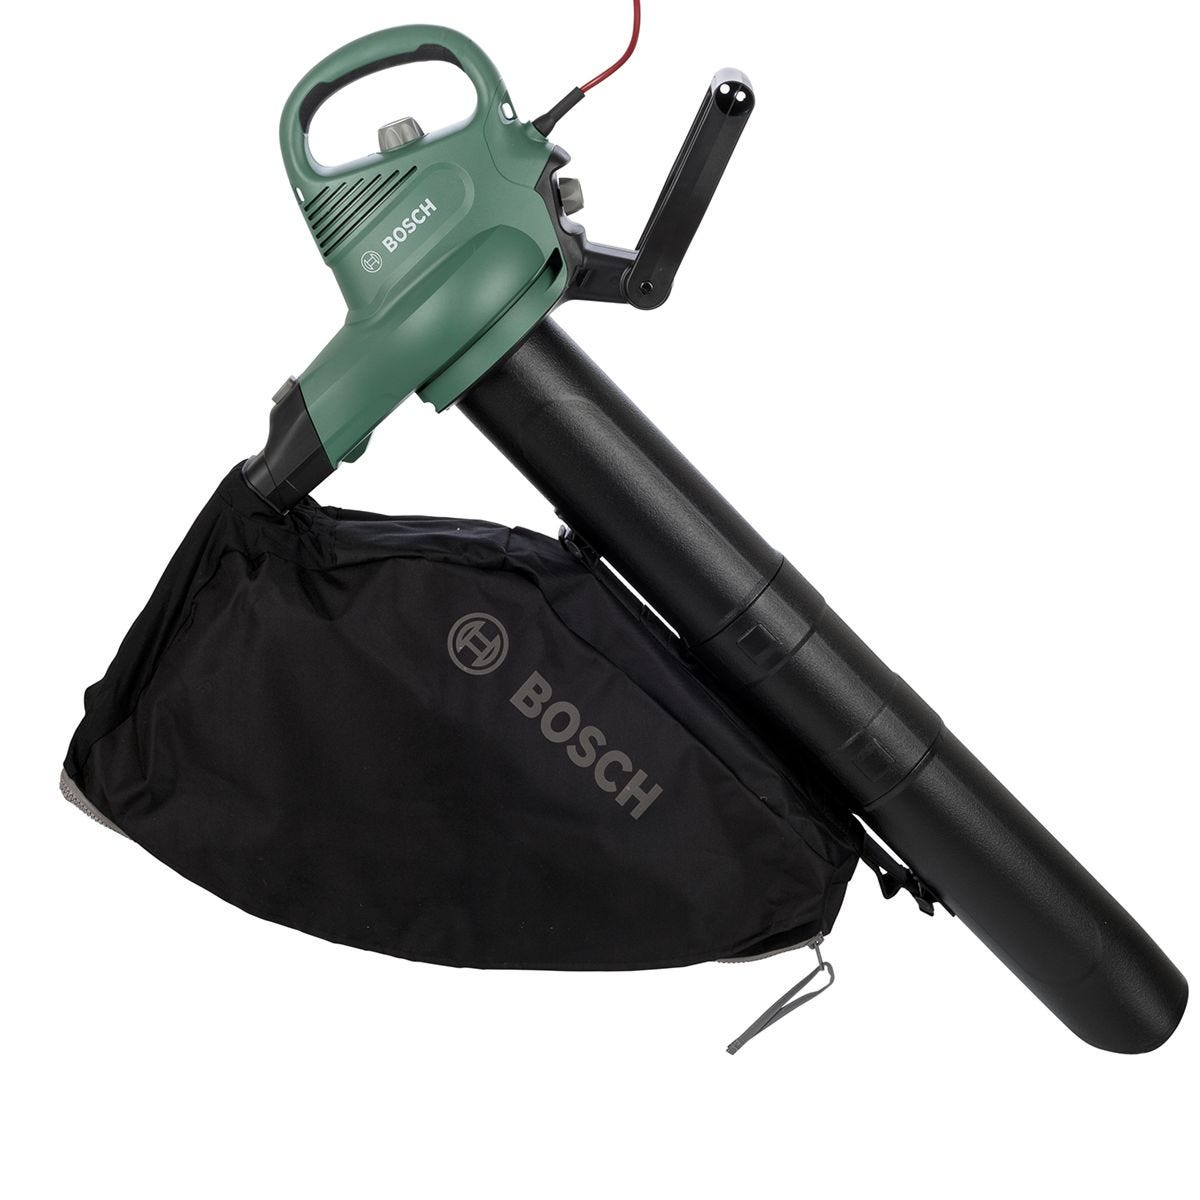 Bosch 3-in-1 Corded 1800w Blower, Vacuum and Shredder